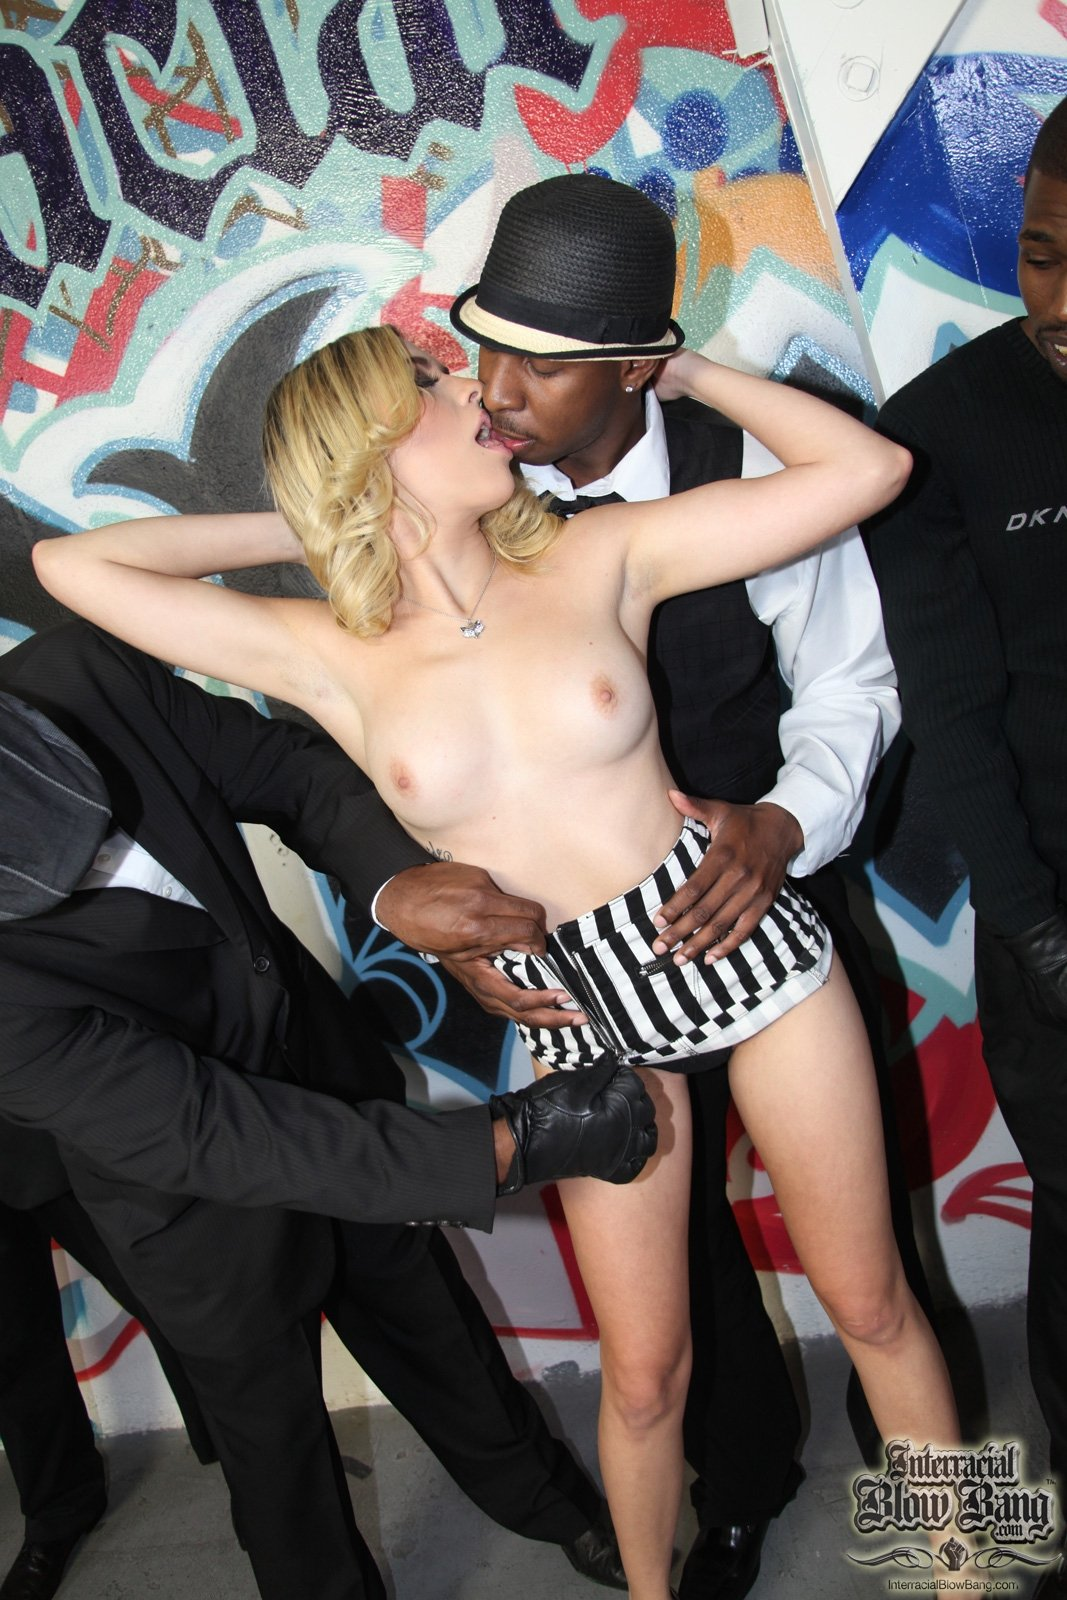 sloppy interracial blowjob there